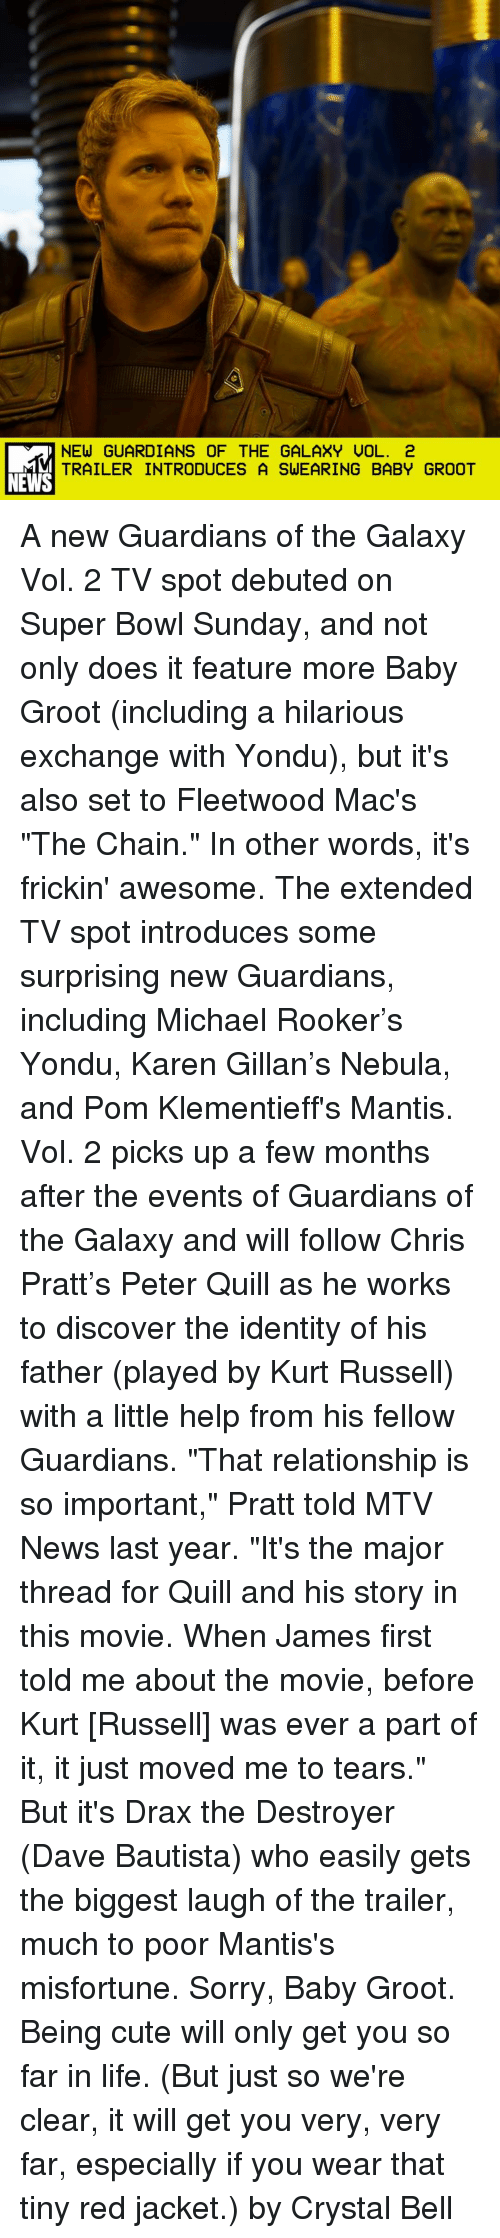 """Misfortunately: NEW GUARDIANS OF THE GALAXY UOL. 2  TRAILER INTRODUCES A SWEARING BABY GROOT  NEWS A new Guardians of the Galaxy Vol. 2 TV spot debuted on Super Bowl Sunday, and not only does it feature more Baby Groot (including a hilarious exchange with Yondu), but it's also set to Fleetwood Mac's """"The Chain."""" In other words, it's frickin' awesome. The extended TV spot introduces some surprising new Guardians, including Michael Rooker's Yondu, Karen Gillan's Nebula, and Pom Klementieff's Mantis. Vol. 2 picks up a few months after the events of Guardians of the Galaxy and will follow Chris Pratt's Peter Quill as he works to discover the identity of his father (played by Kurt Russell) with a little help from his fellow Guardians. """"That relationship is so important,"""" Pratt told MTV News last year. """"It's the major thread for Quill and his story in this movie. When James first told me about the movie, before Kurt [Russell] was ever a part of it, it just moved me to tears."""" But it's Drax the Destroyer (Dave Bautista) who easily gets the biggest laugh of the trailer, much to poor Mantis's misfortune. Sorry, Baby Groot. Being cute will only get you so far in life. (But just so we're clear, it will get you very, very far, especially if you wear that tiny red jacket.) by Crystal Bell"""